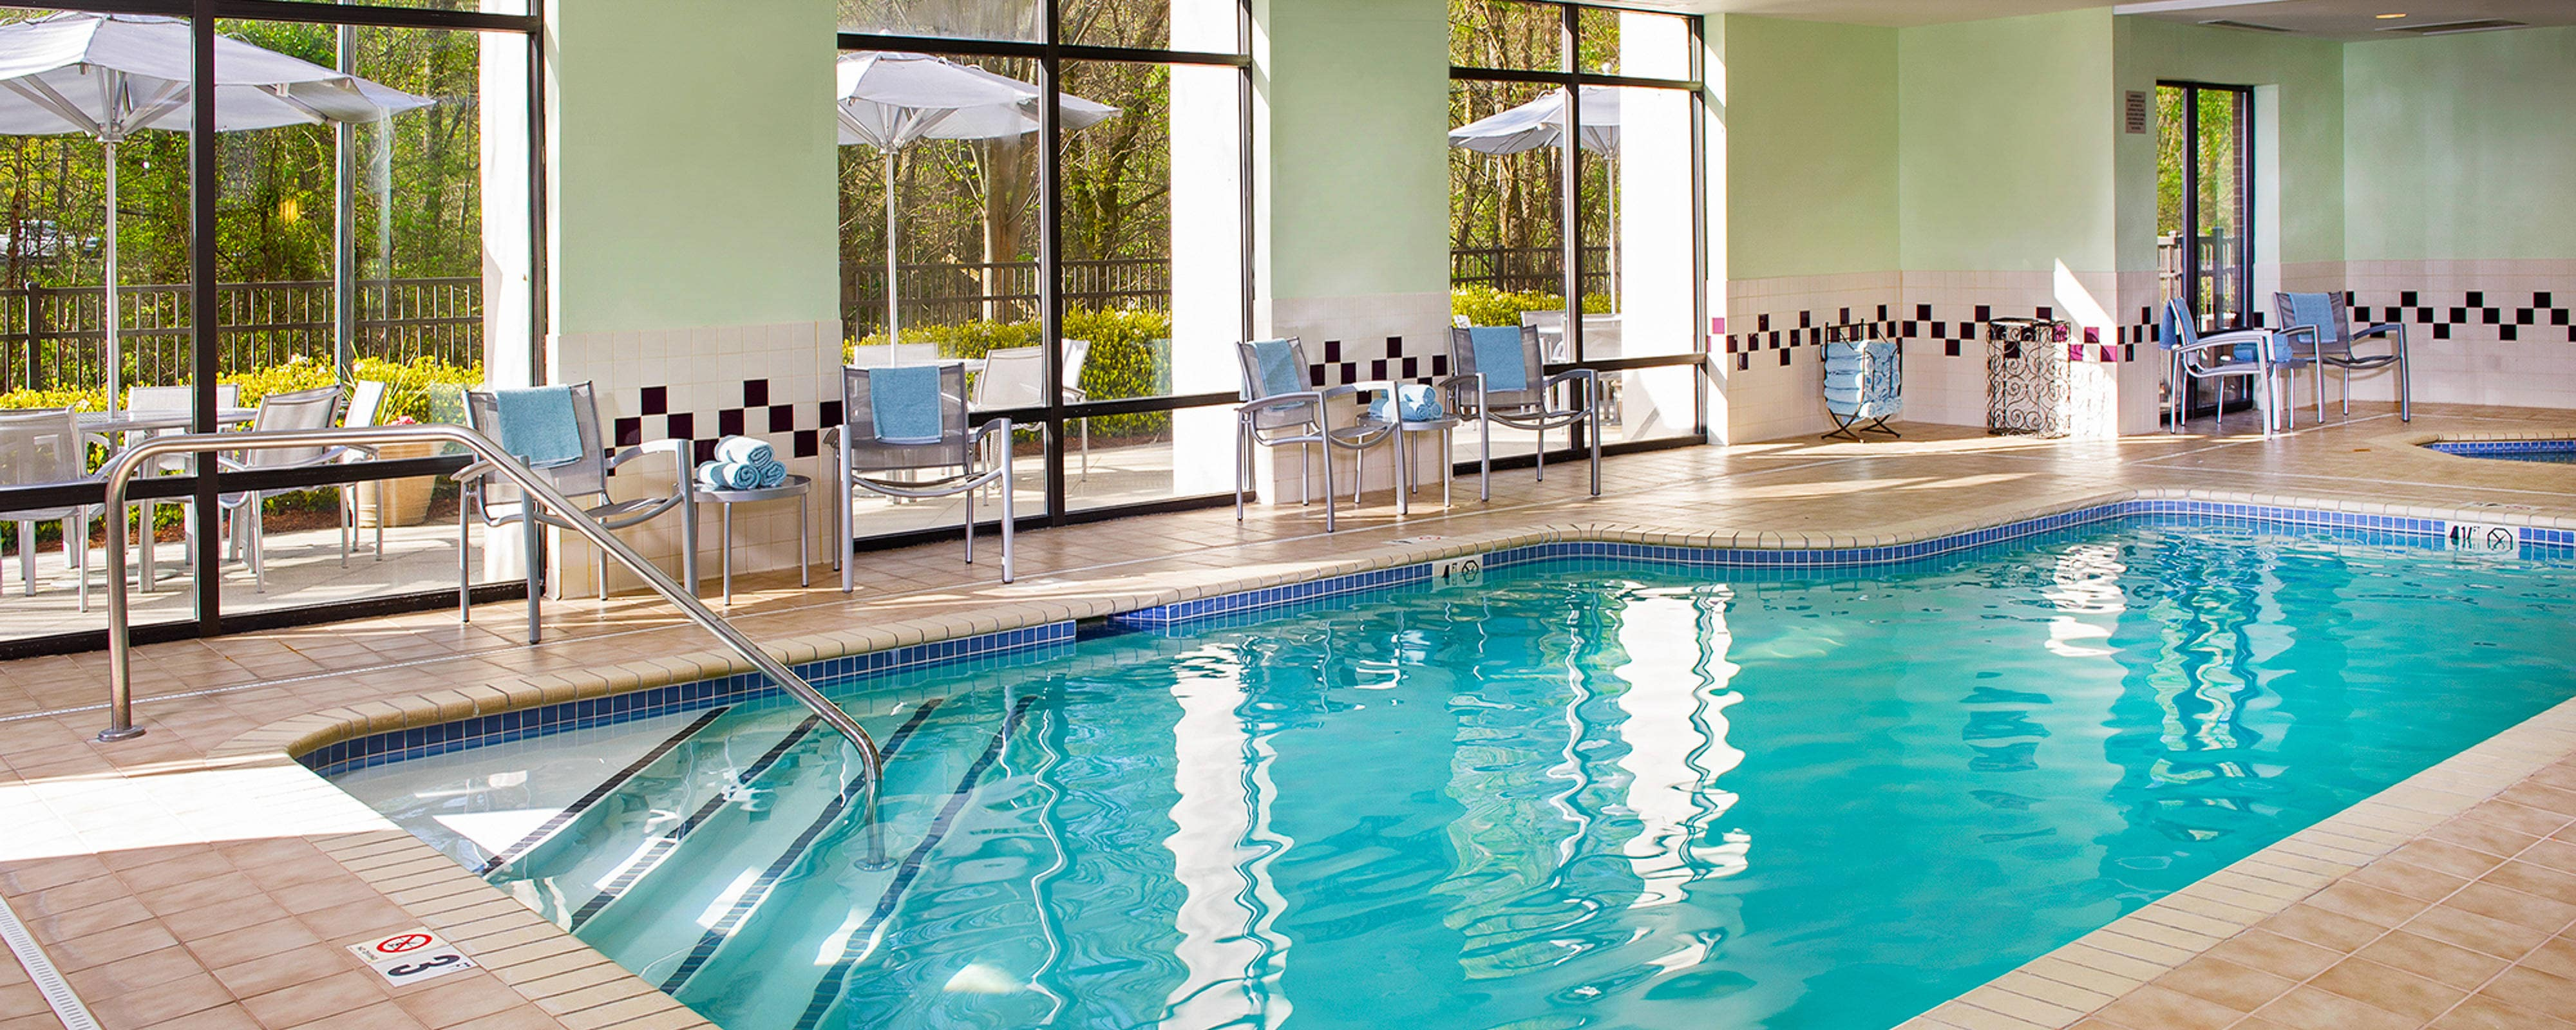 Hotels With Indoor Pools In Charlotte Nc Springhill Suites Charlotte